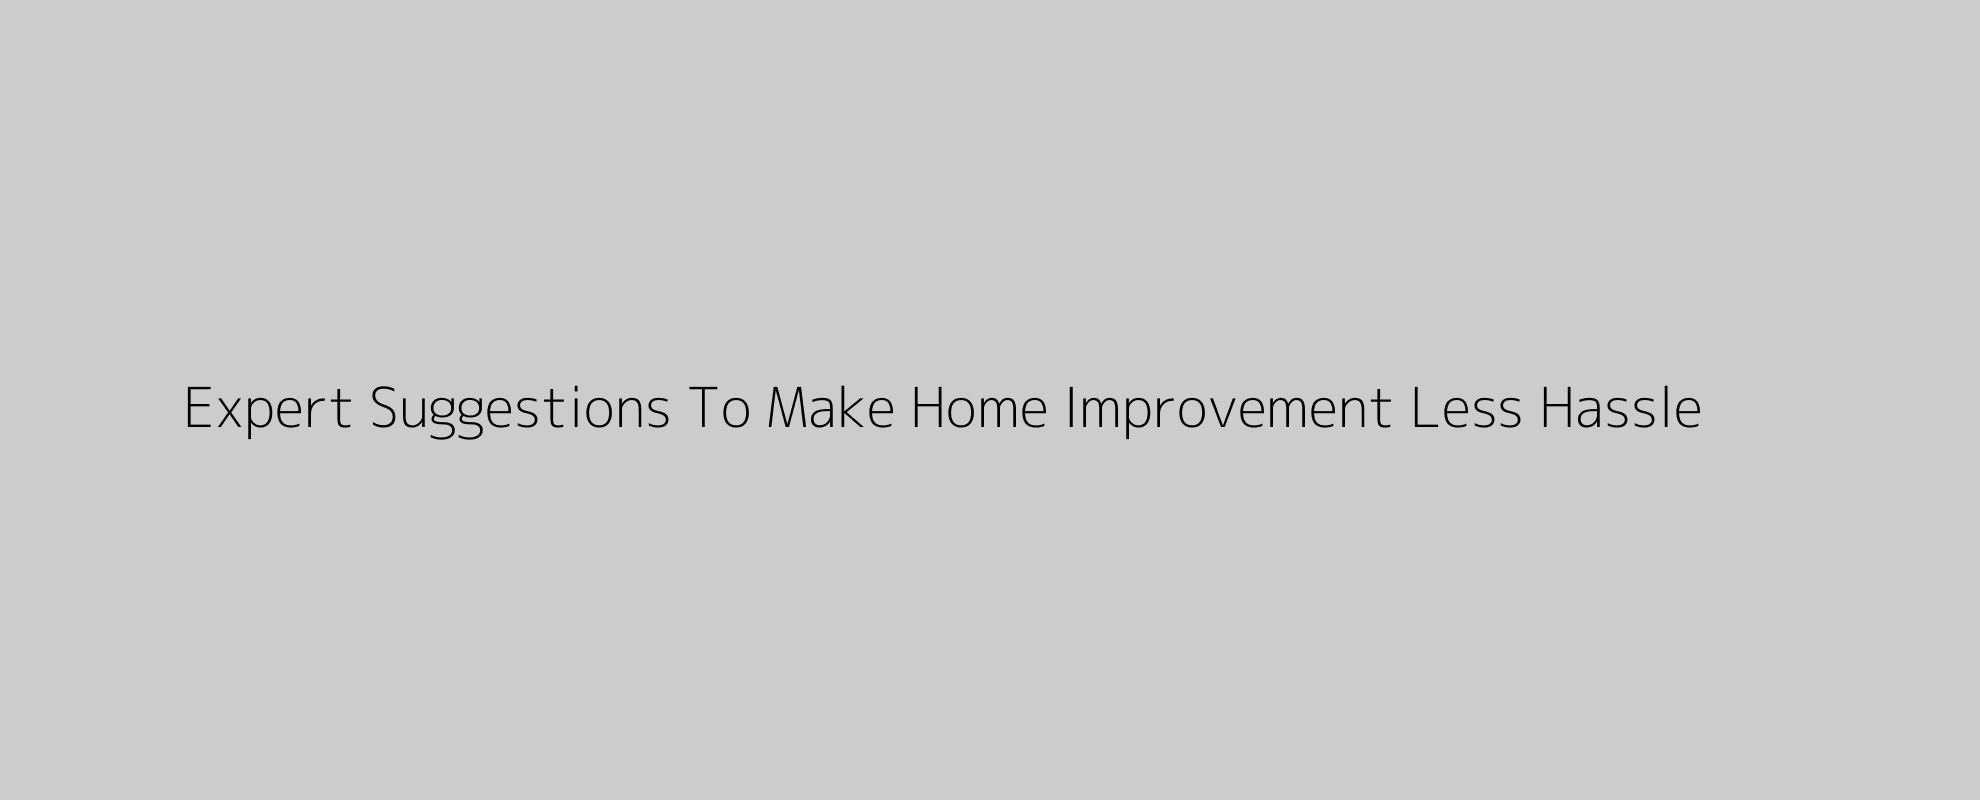 Expert Suggestions To Make Home Improvement Less Hassle